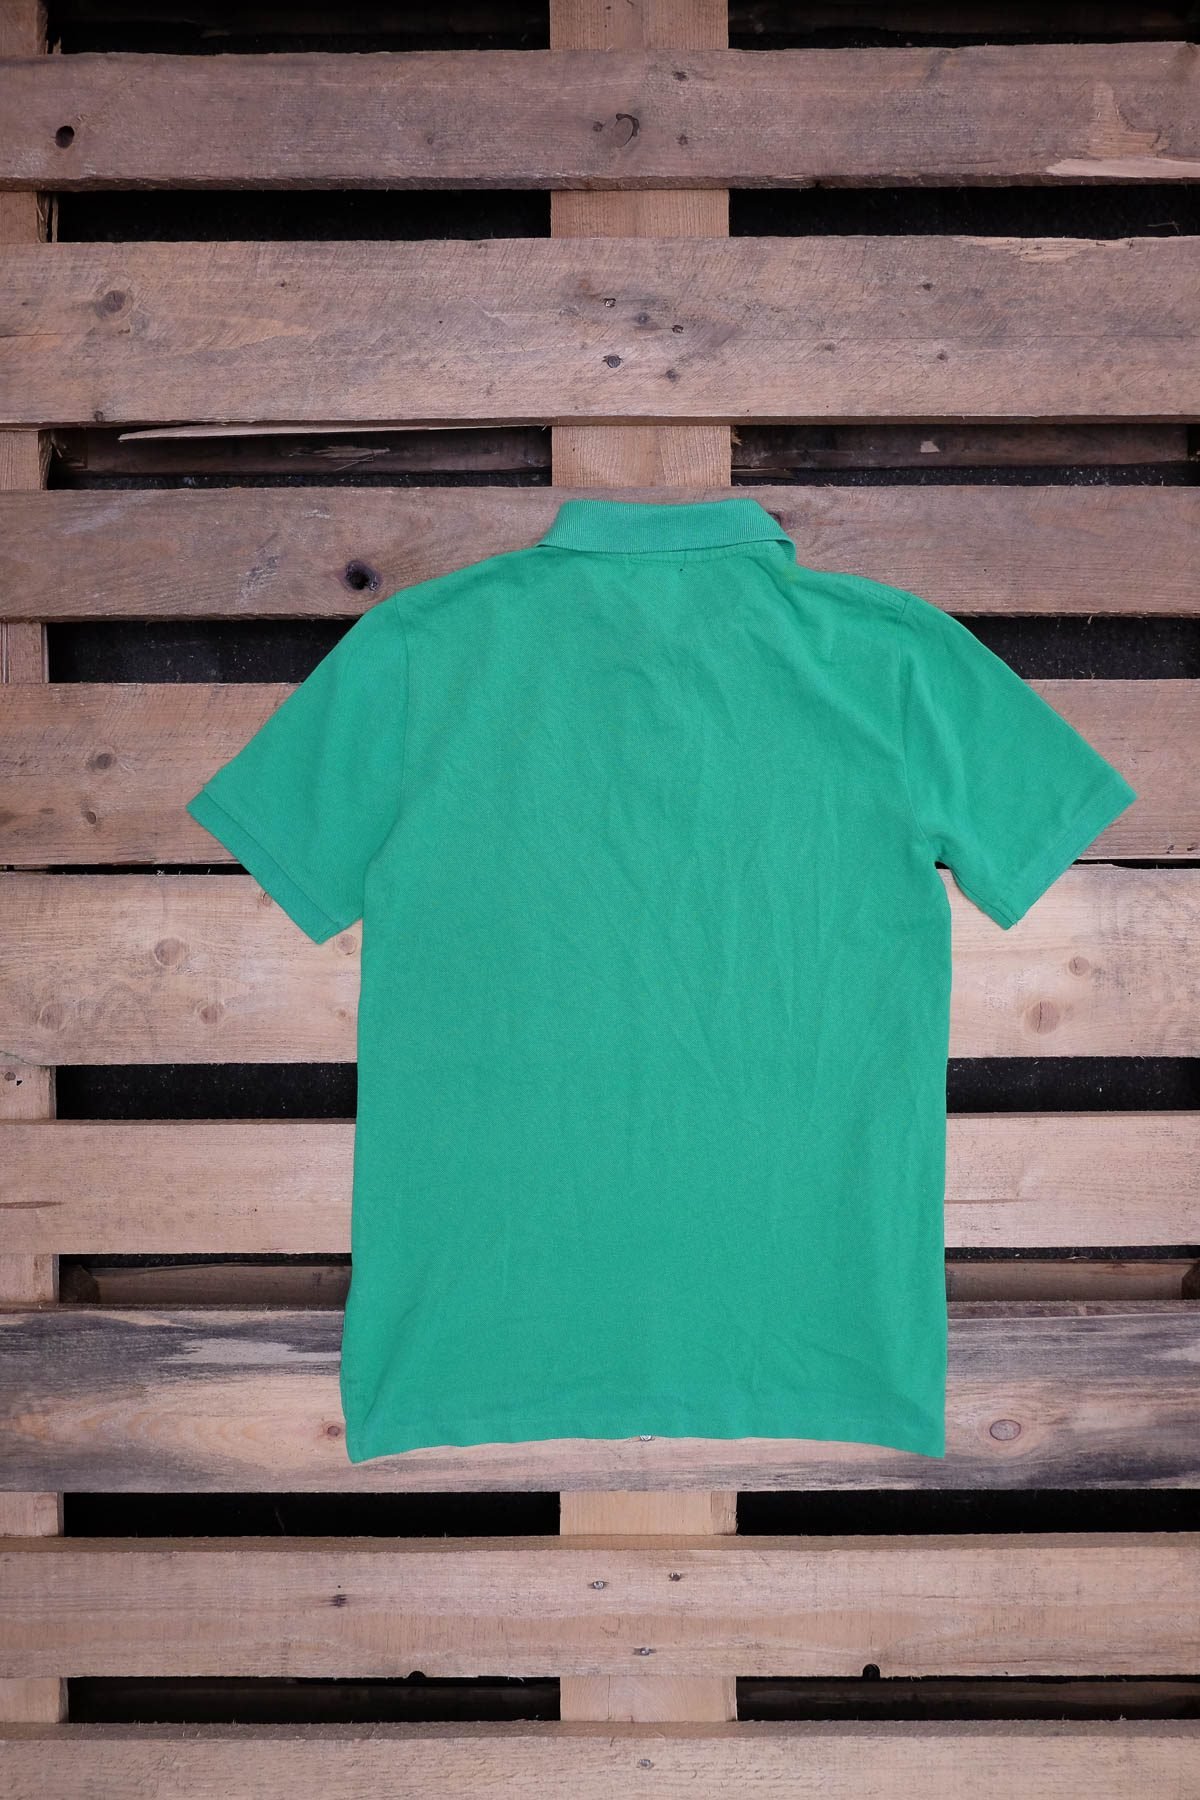 Ralph Lauren T-SHIRT POLO VINTAGE Green